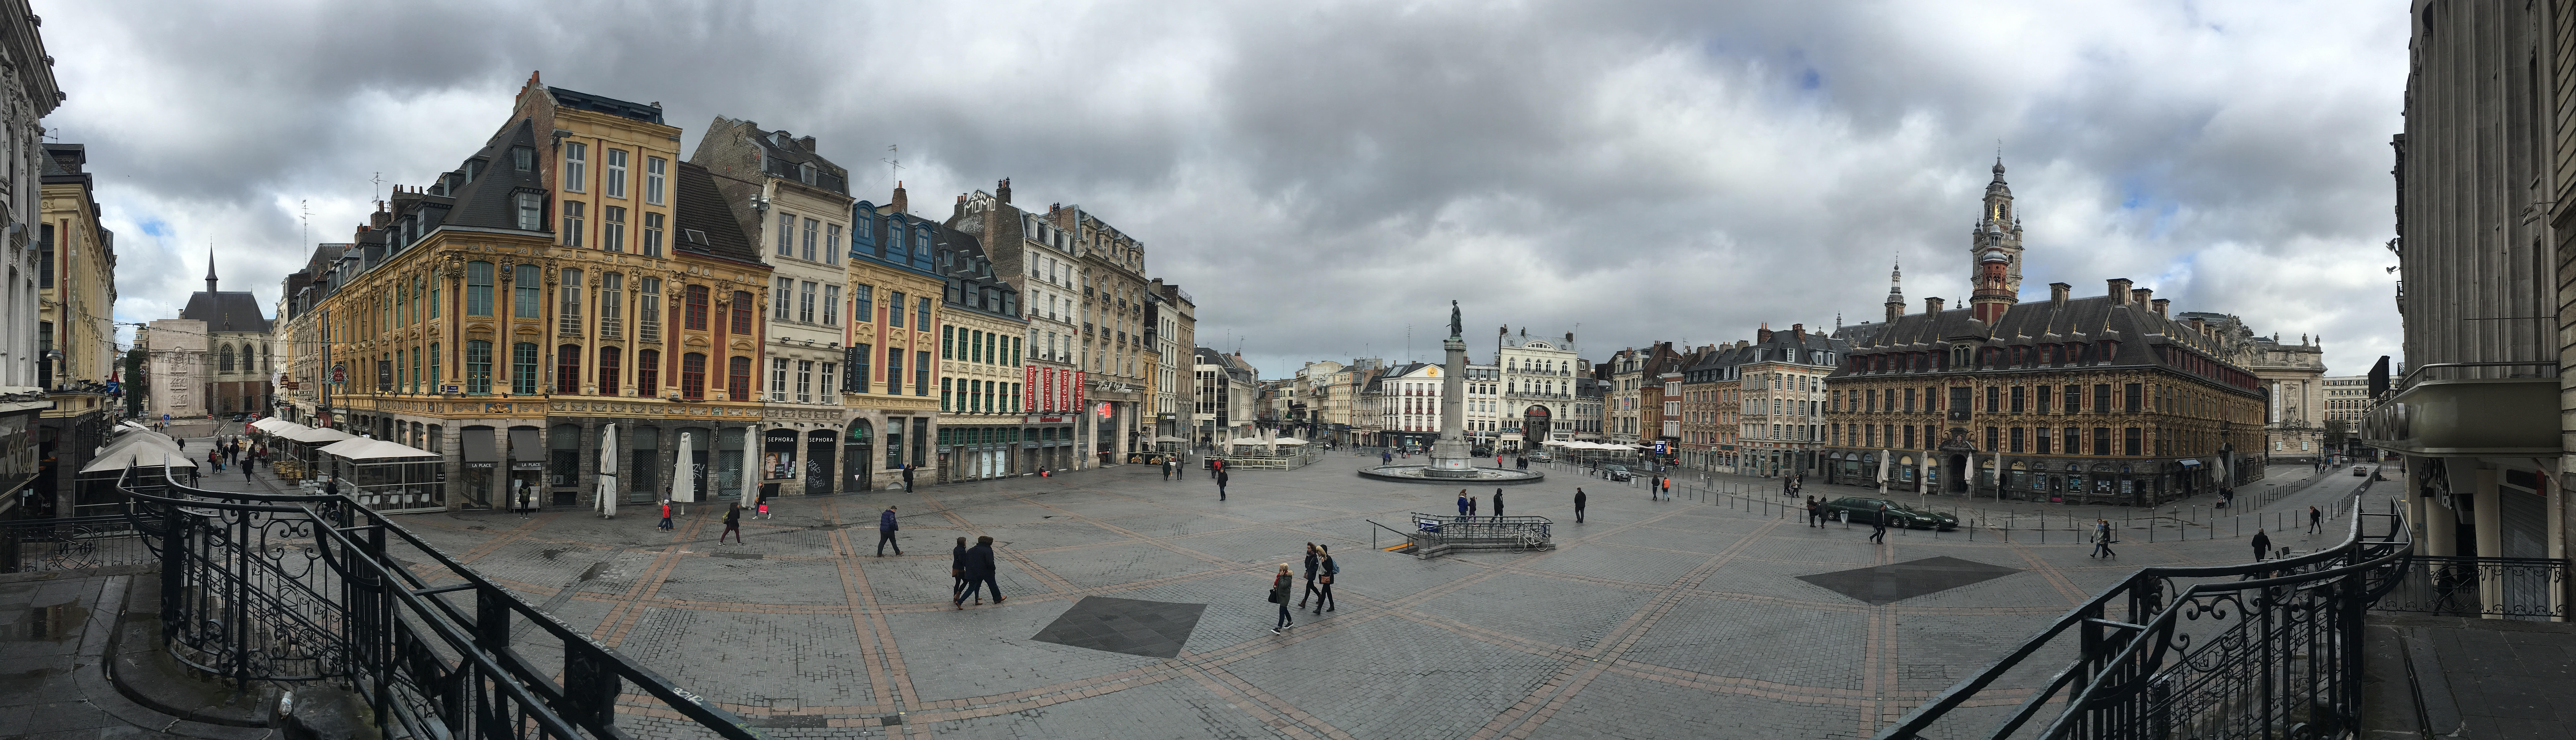 Grand 'Place Lille